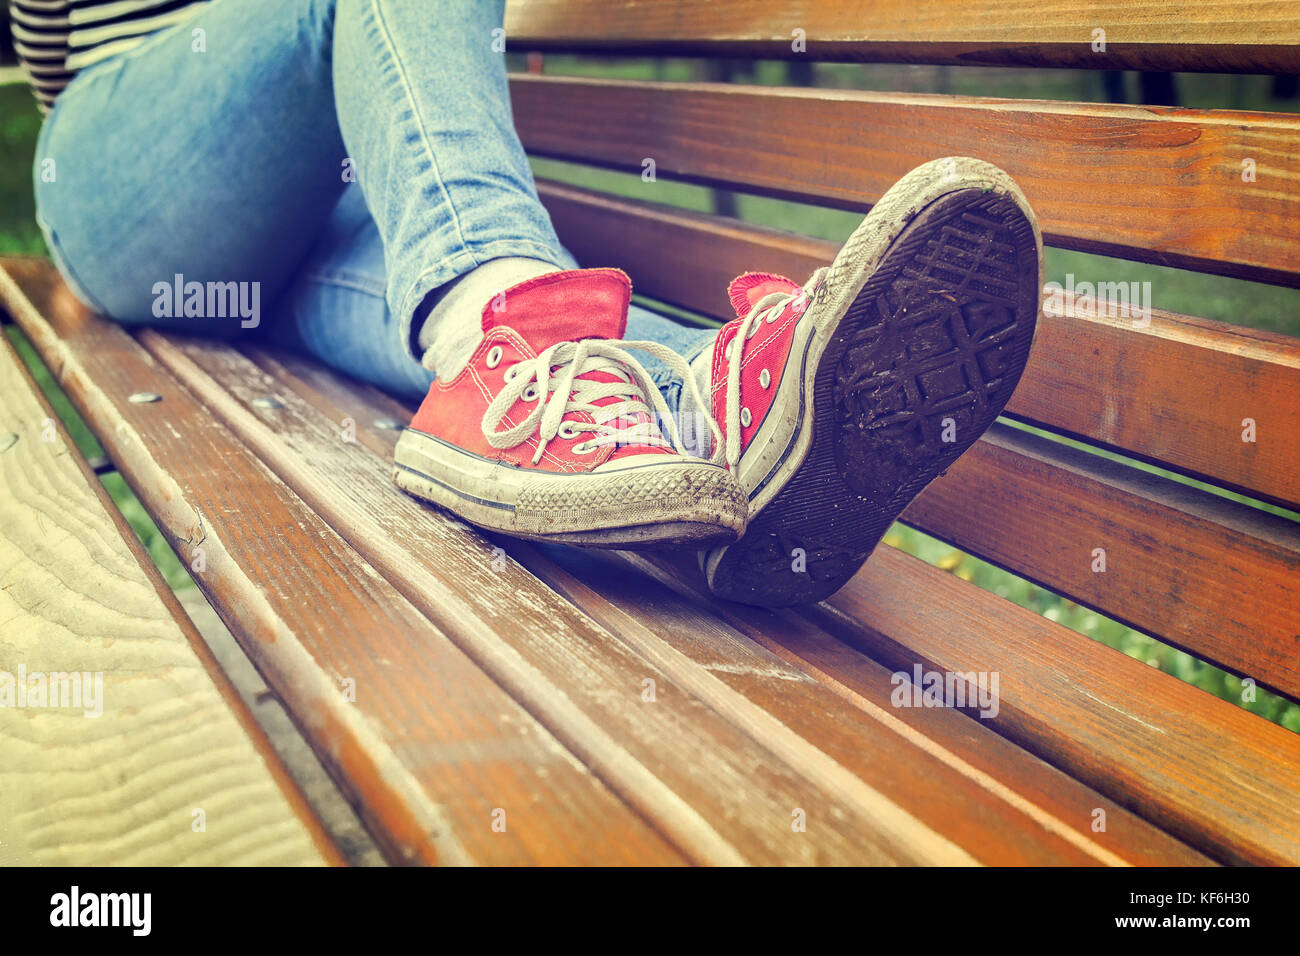 Woman's legs wearing red canvas sneakers and blue jeans, on a park bench, retro styled photo - Stock Image